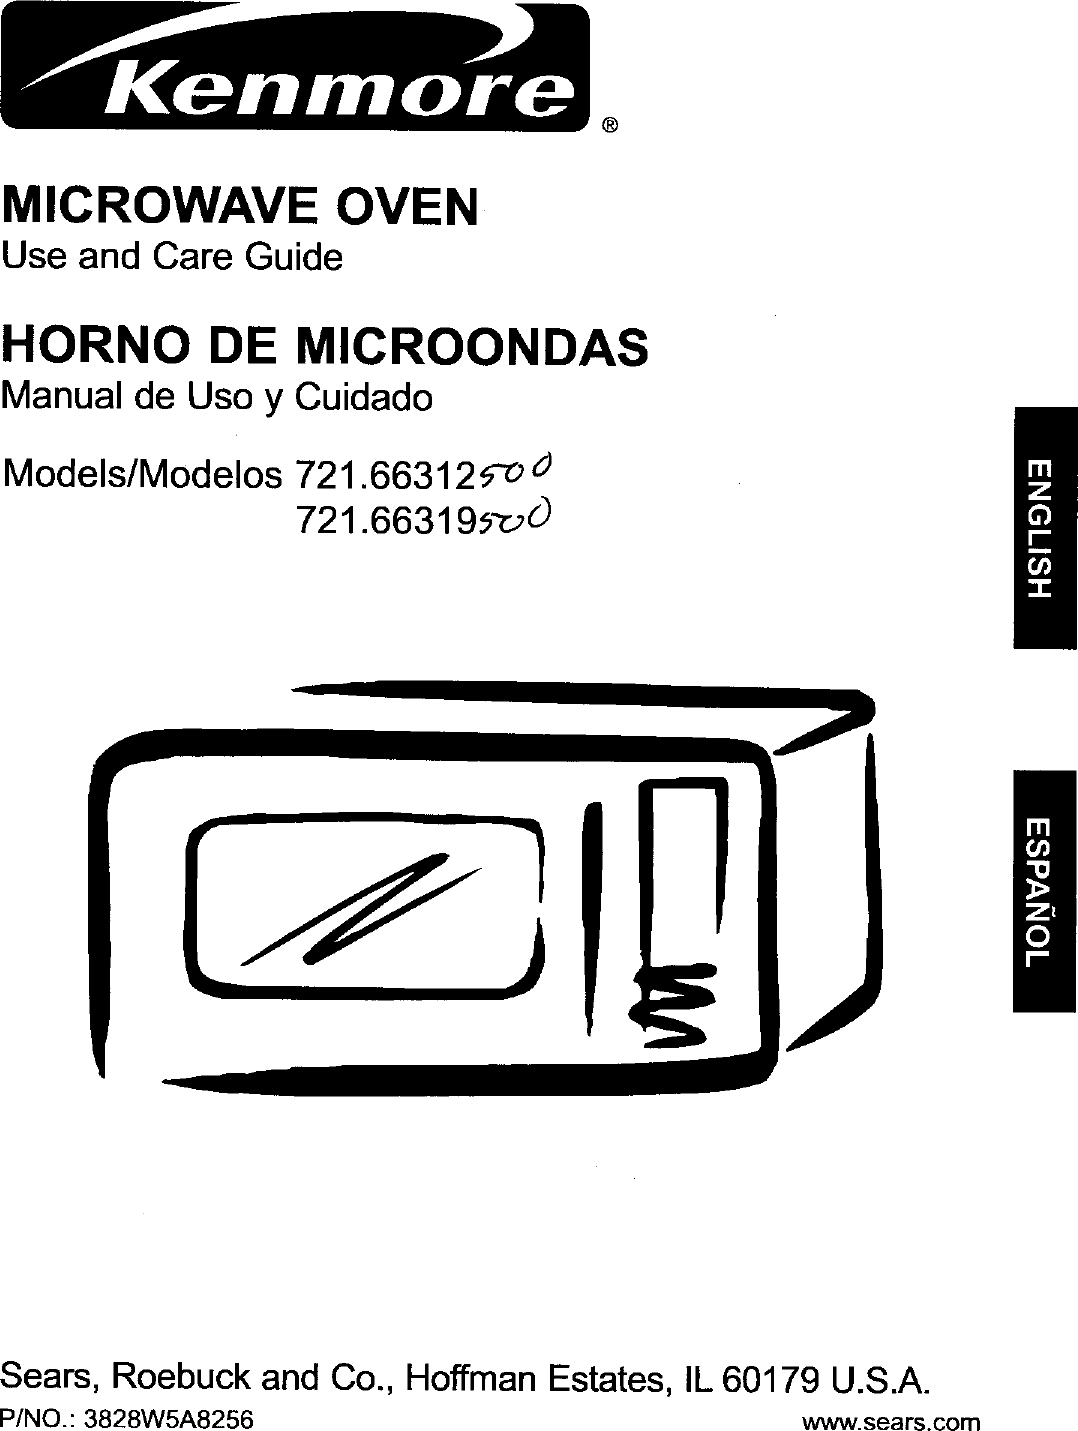 Kenmore Quick Touch Microwave Manual